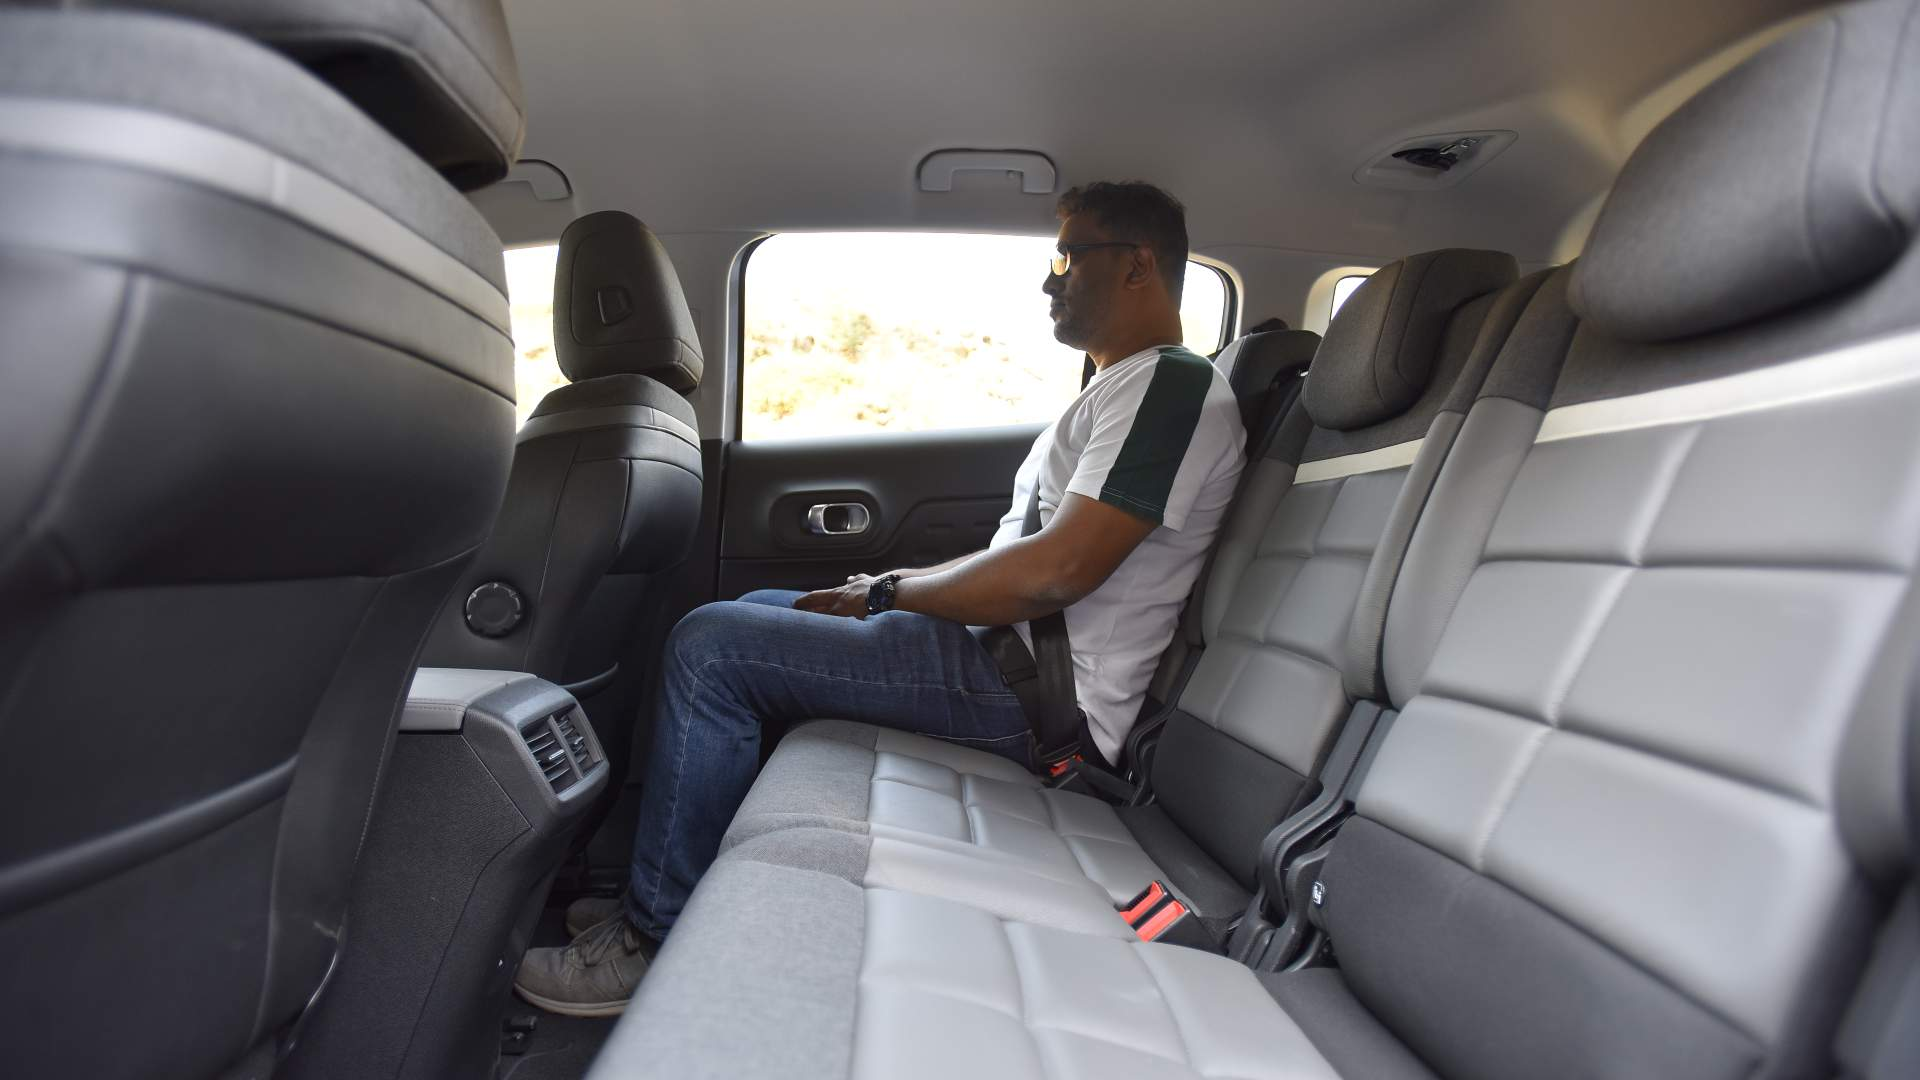 Three-abreast in the back seat of the C5 will be more comfortable than in any other SUV in this class. Image: Overdrive/Anis Shaikh